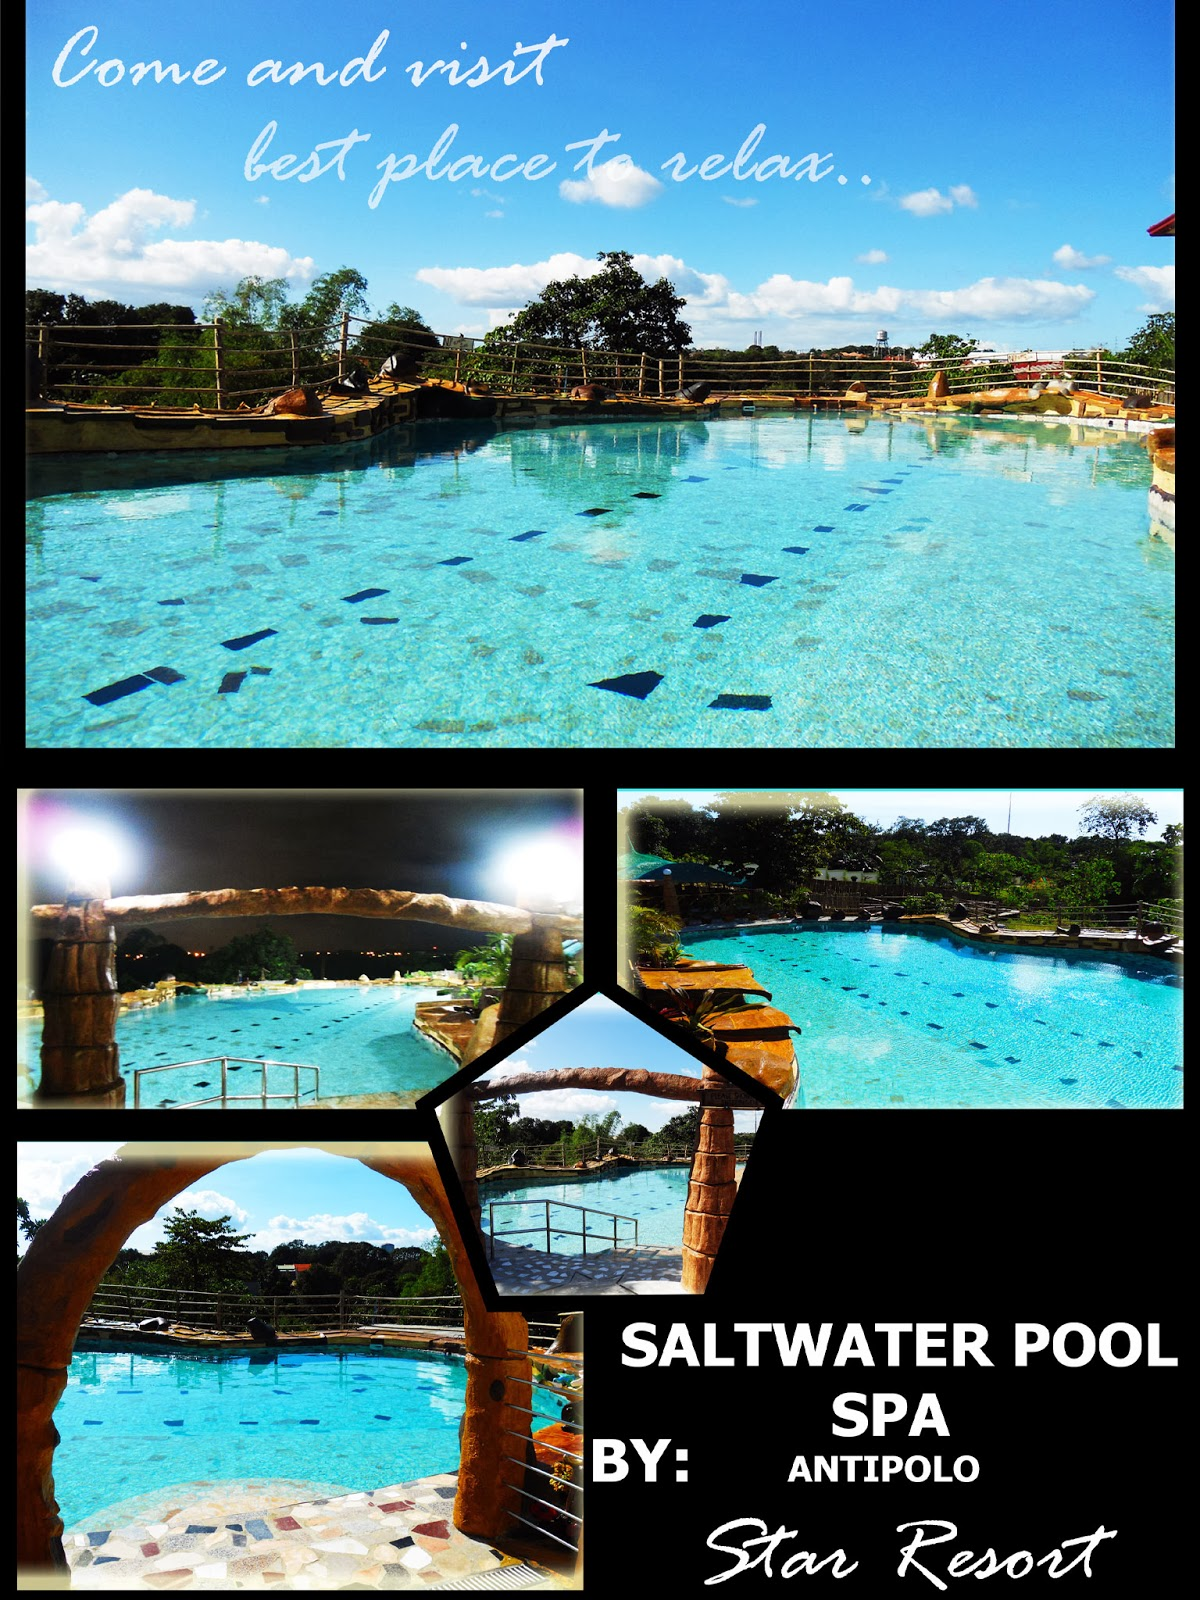 Antipolo star resort 1st saltwater swimming pool in antipolo best place to relax for Sierra madre swimming pool sierra madre ca